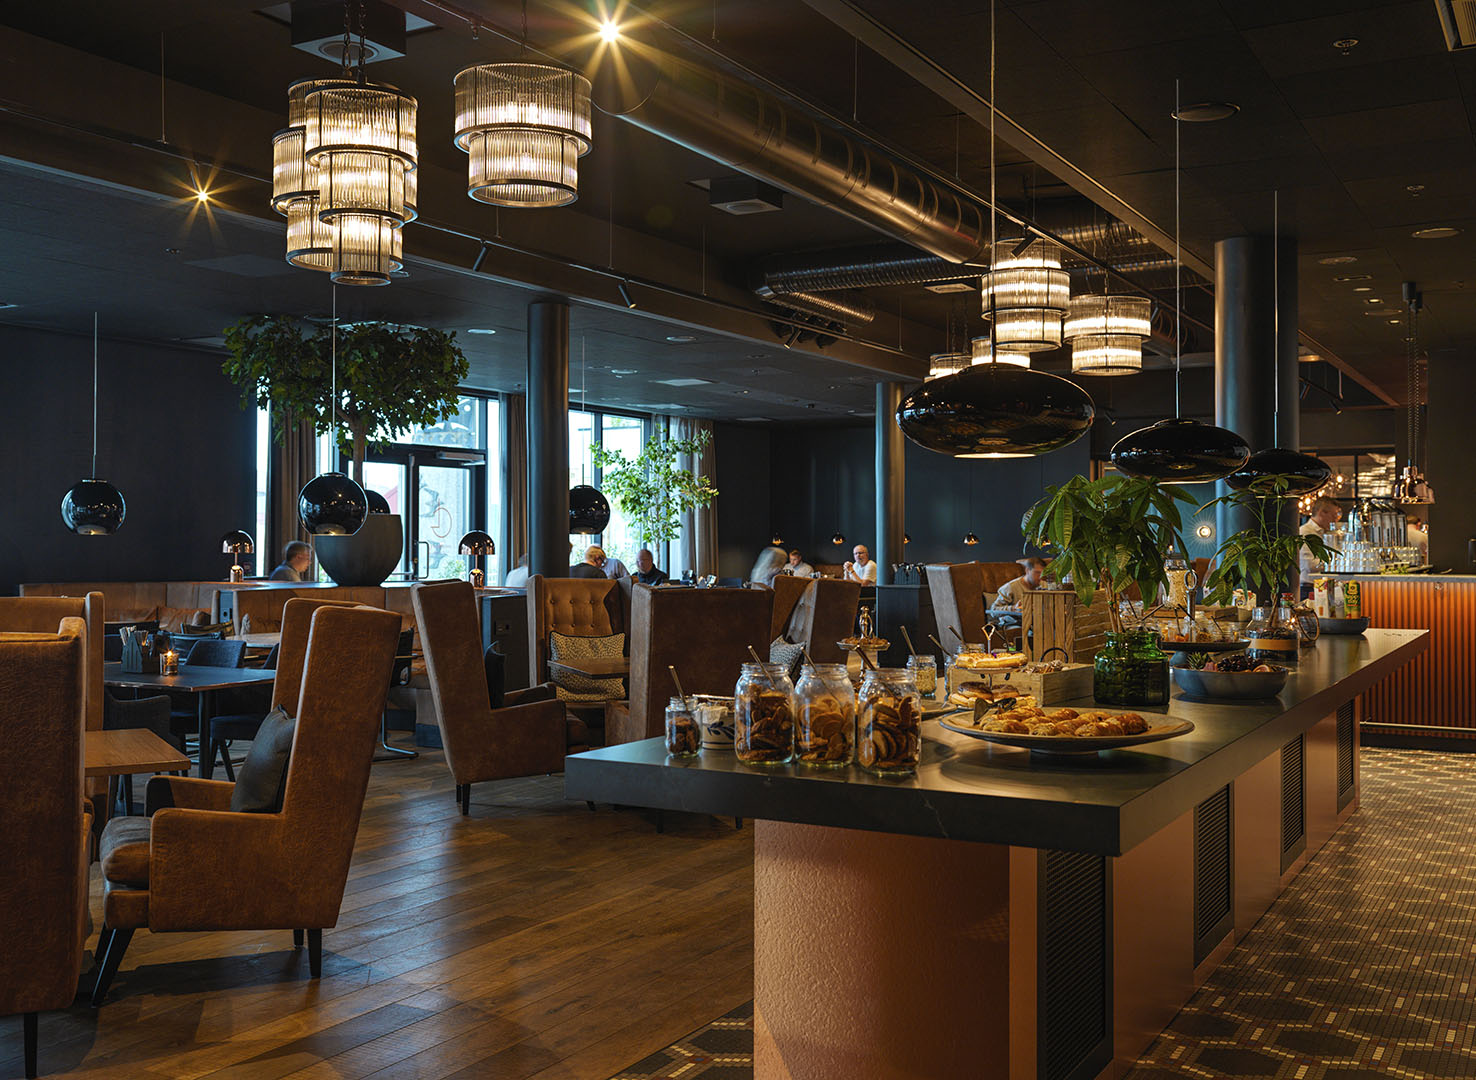 Radisson Blue Caledonien Hotel Tasty experiences await you in warm surroundings at Grenseløs Restaurant & Bar.